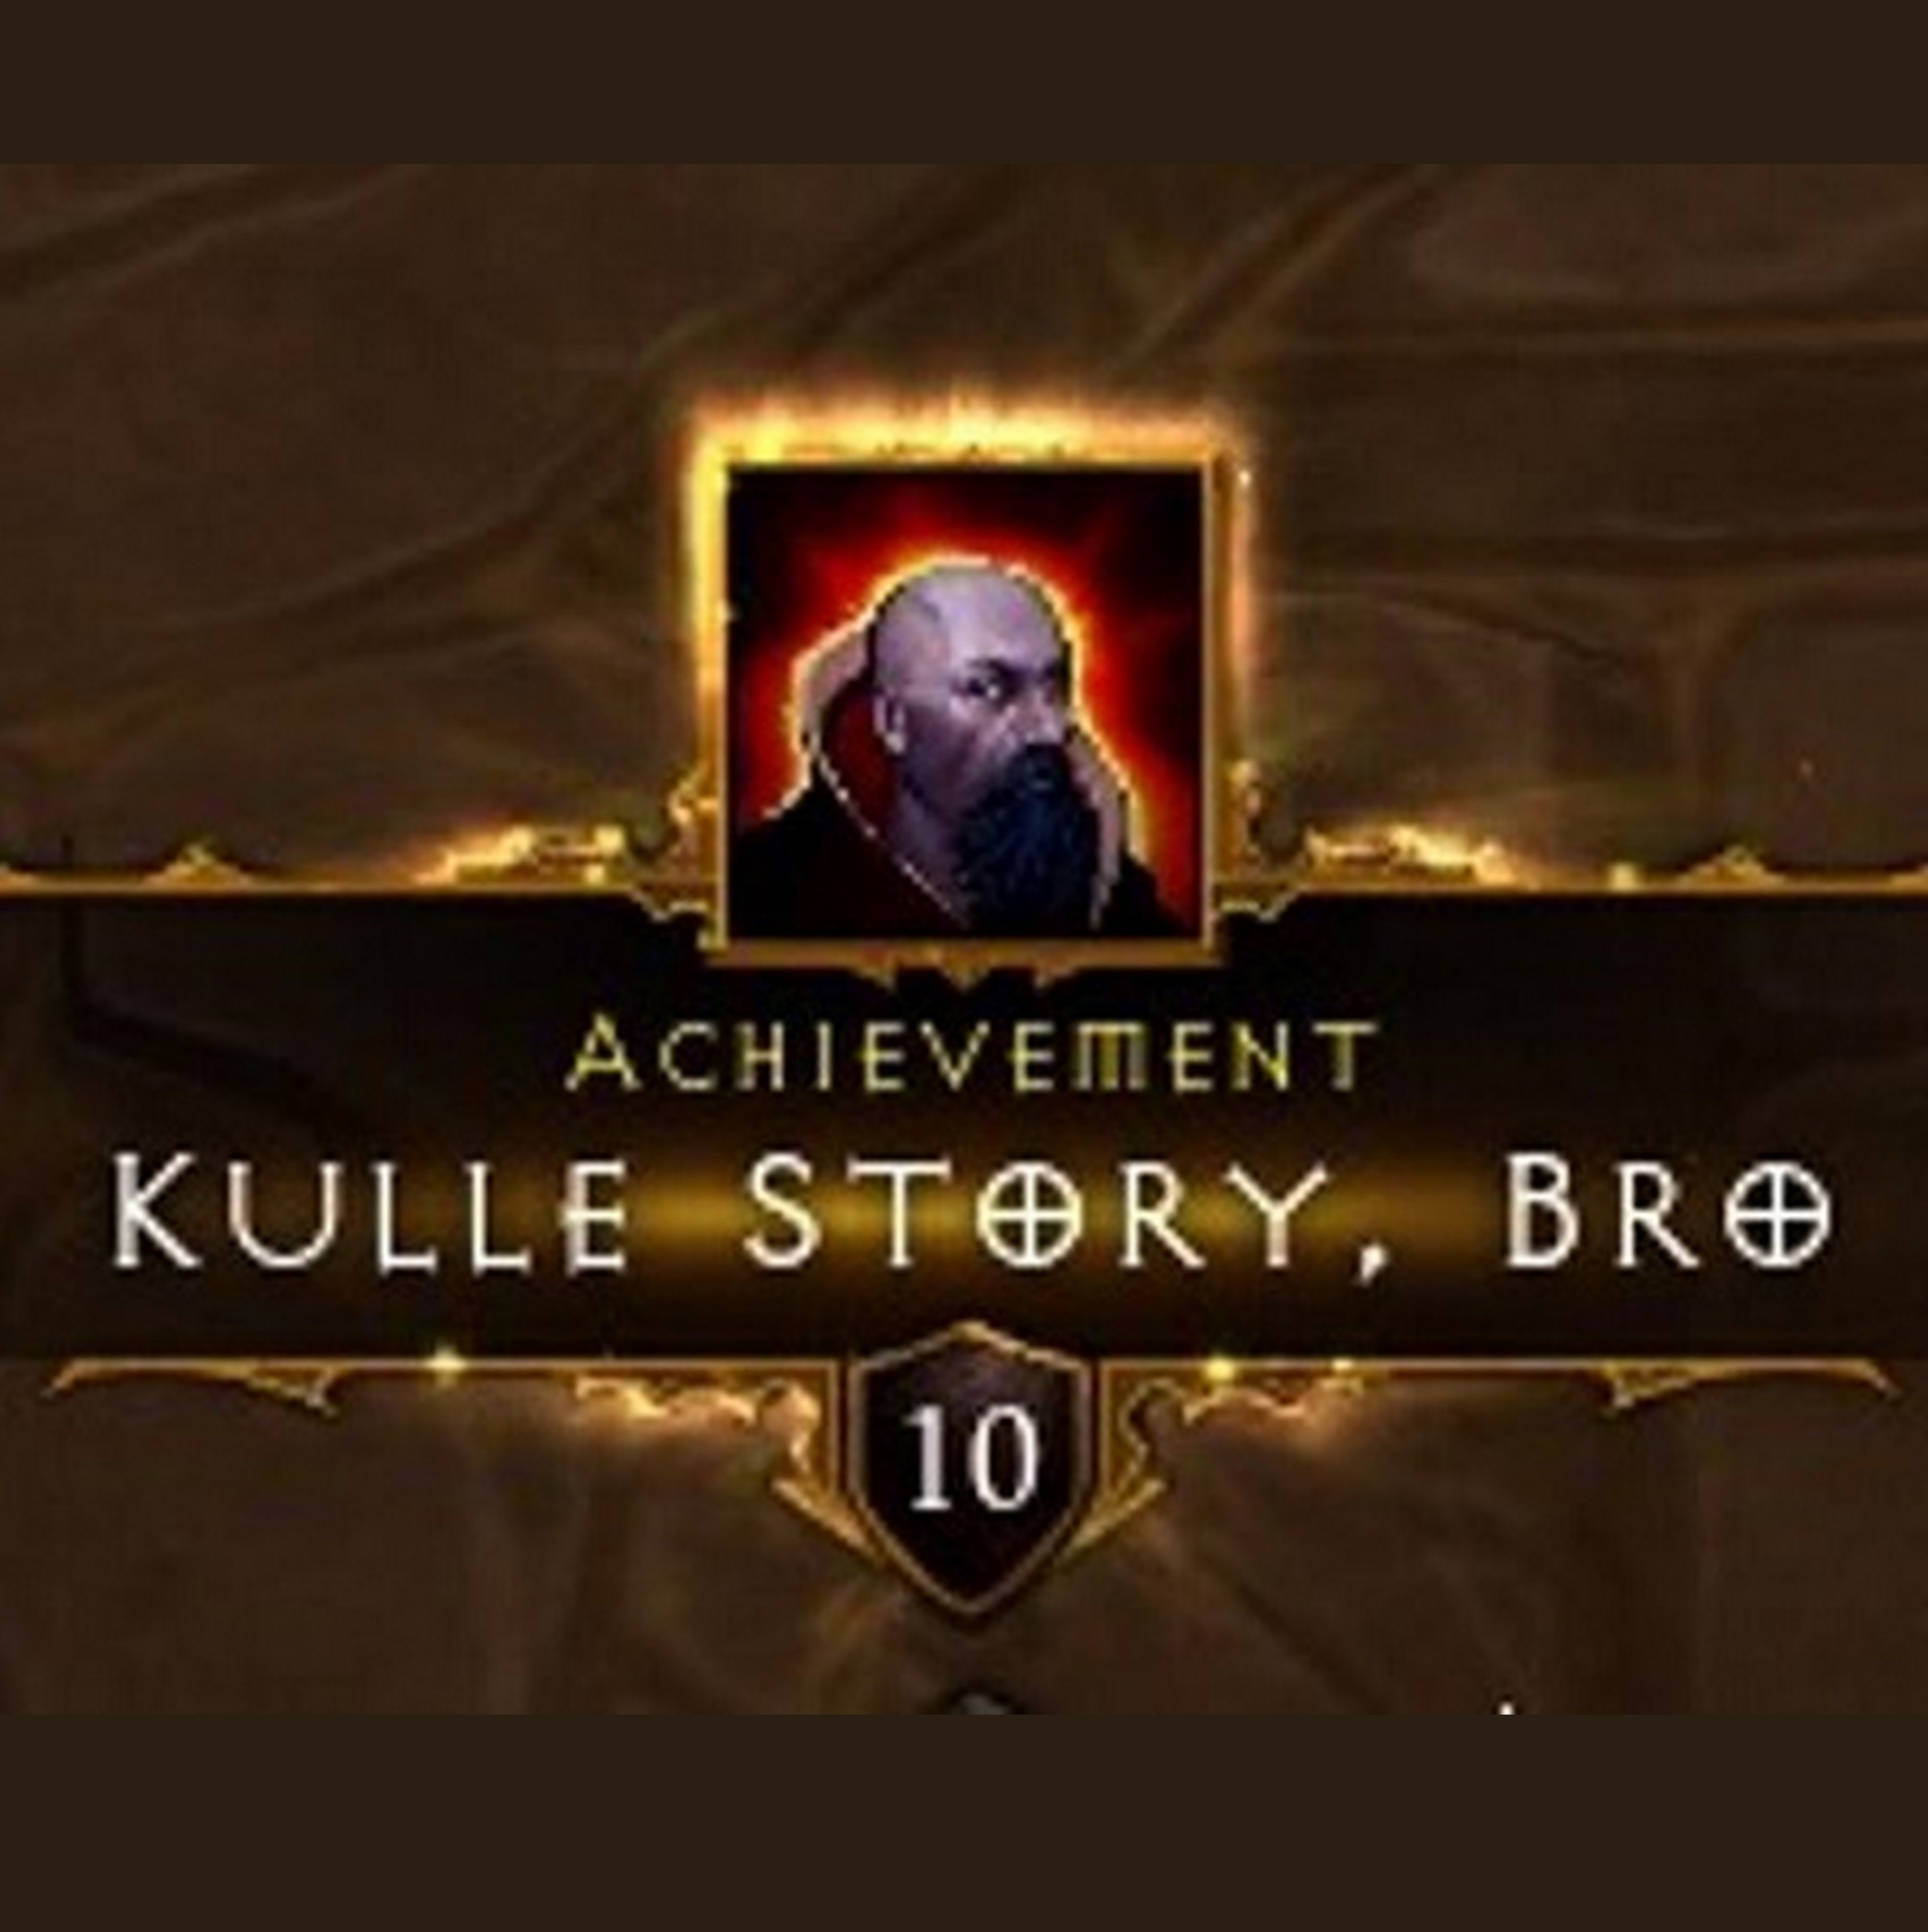 Kulle Story Bro - A Diablo 3 Podcast Episode 41